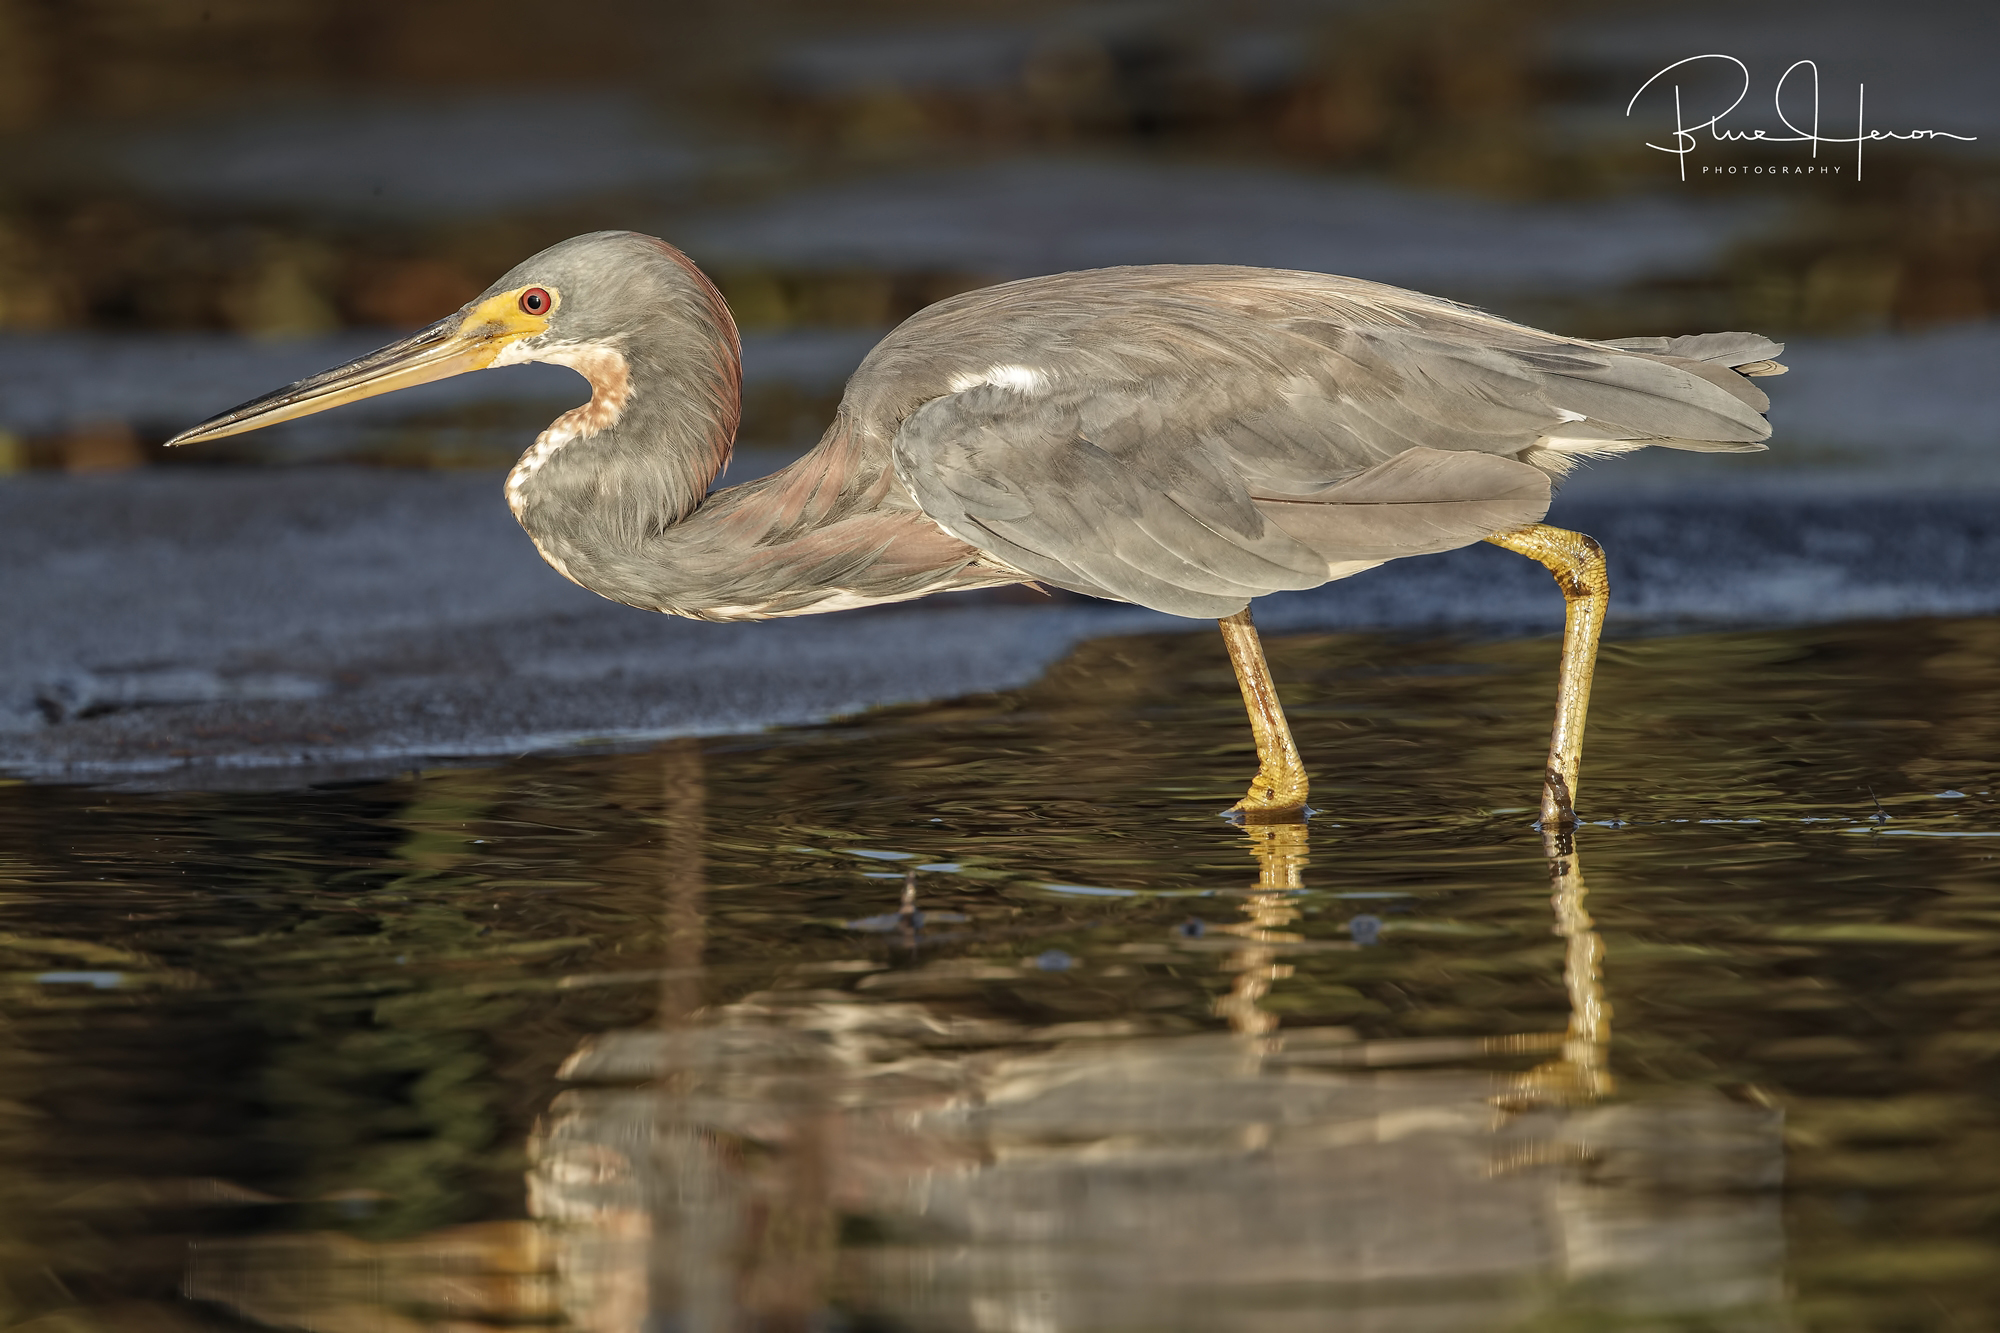 Did someone say minnows? Tricolored Heron on the hunt